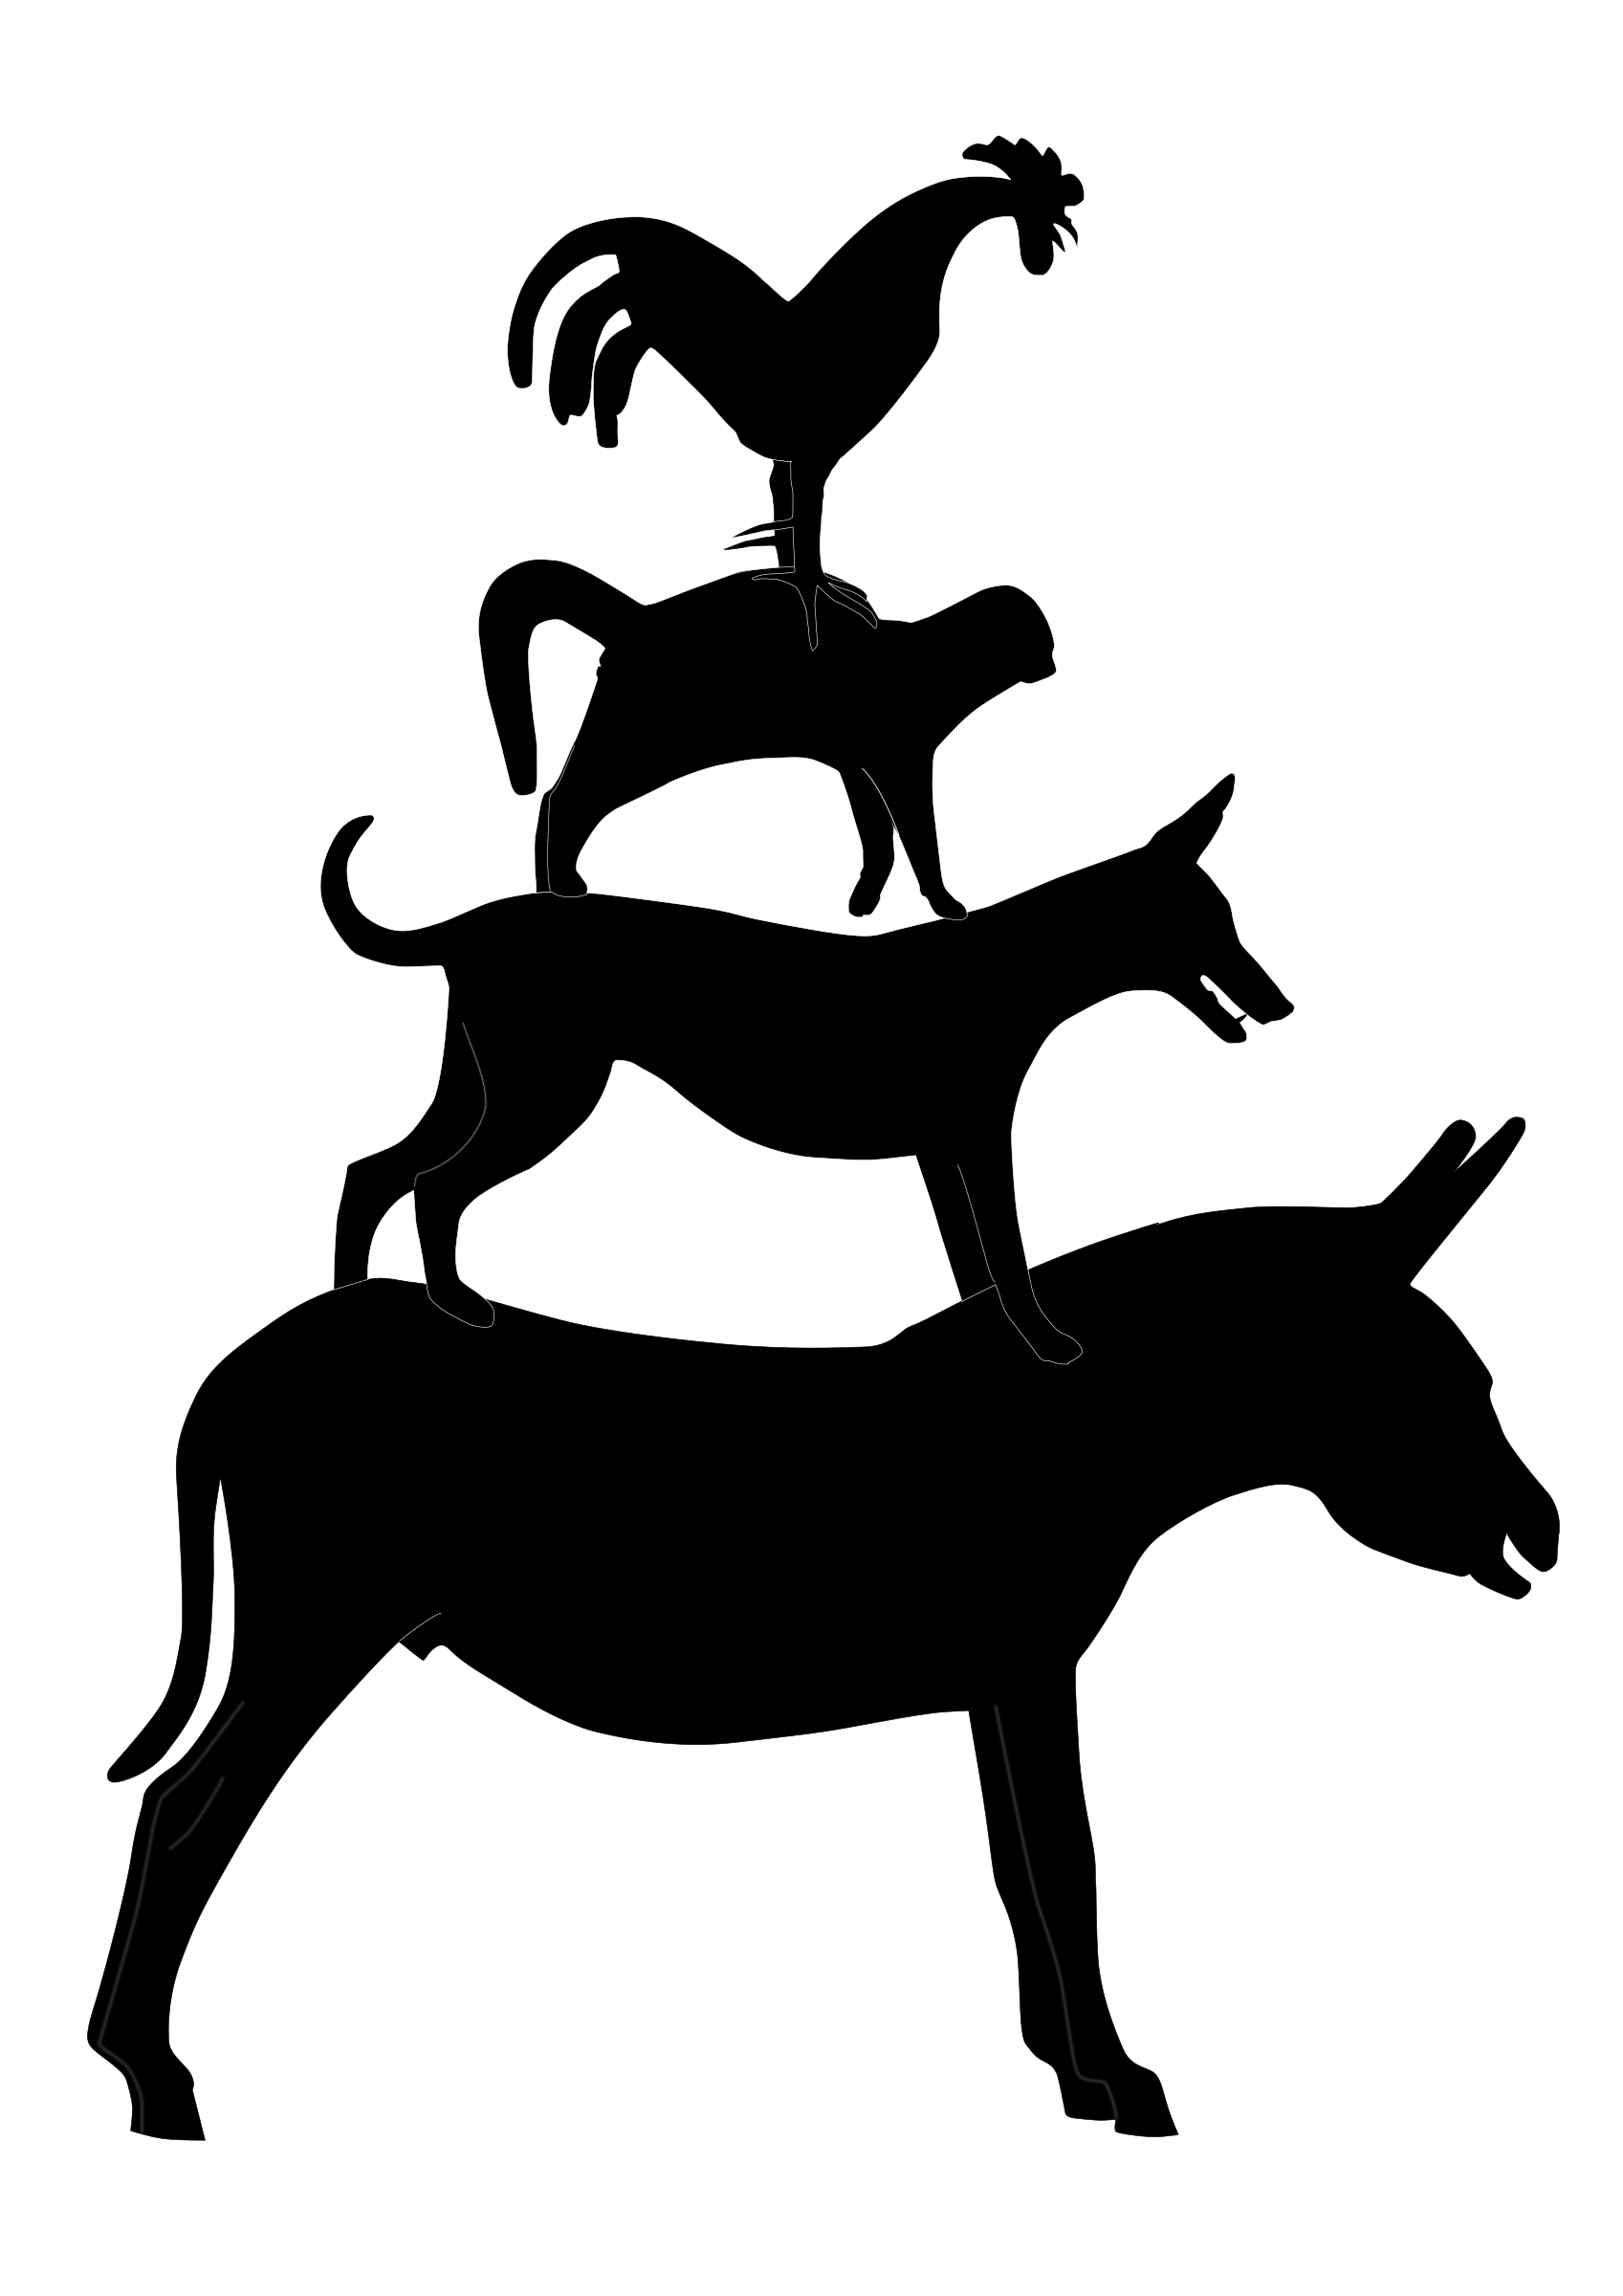 the musicians of bremen silhouette vector clipart image free stock